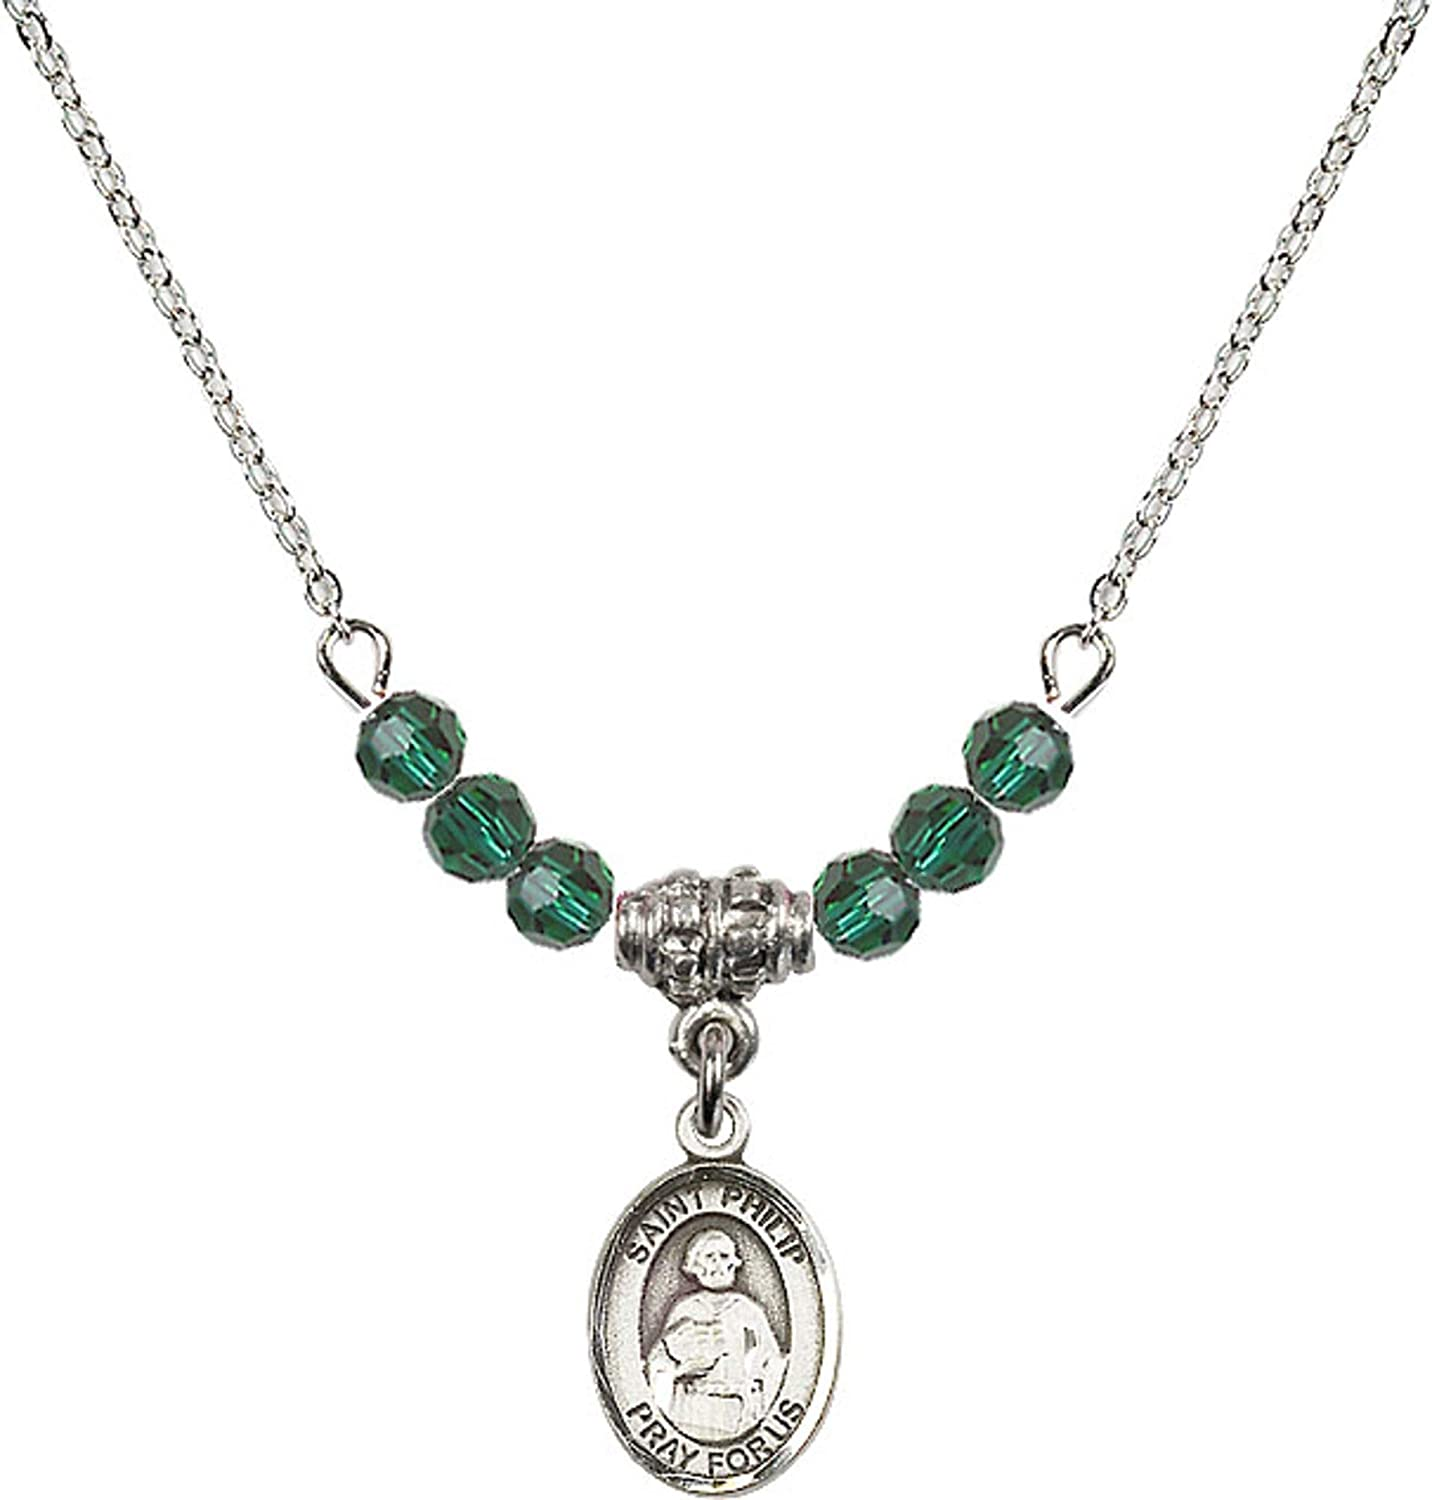 Bonyak Jewelry 18 Inch Rhodium Plated Necklace w// 4mm Green May Birth Month Stone Beads and Saint Philip The Apostle Charm